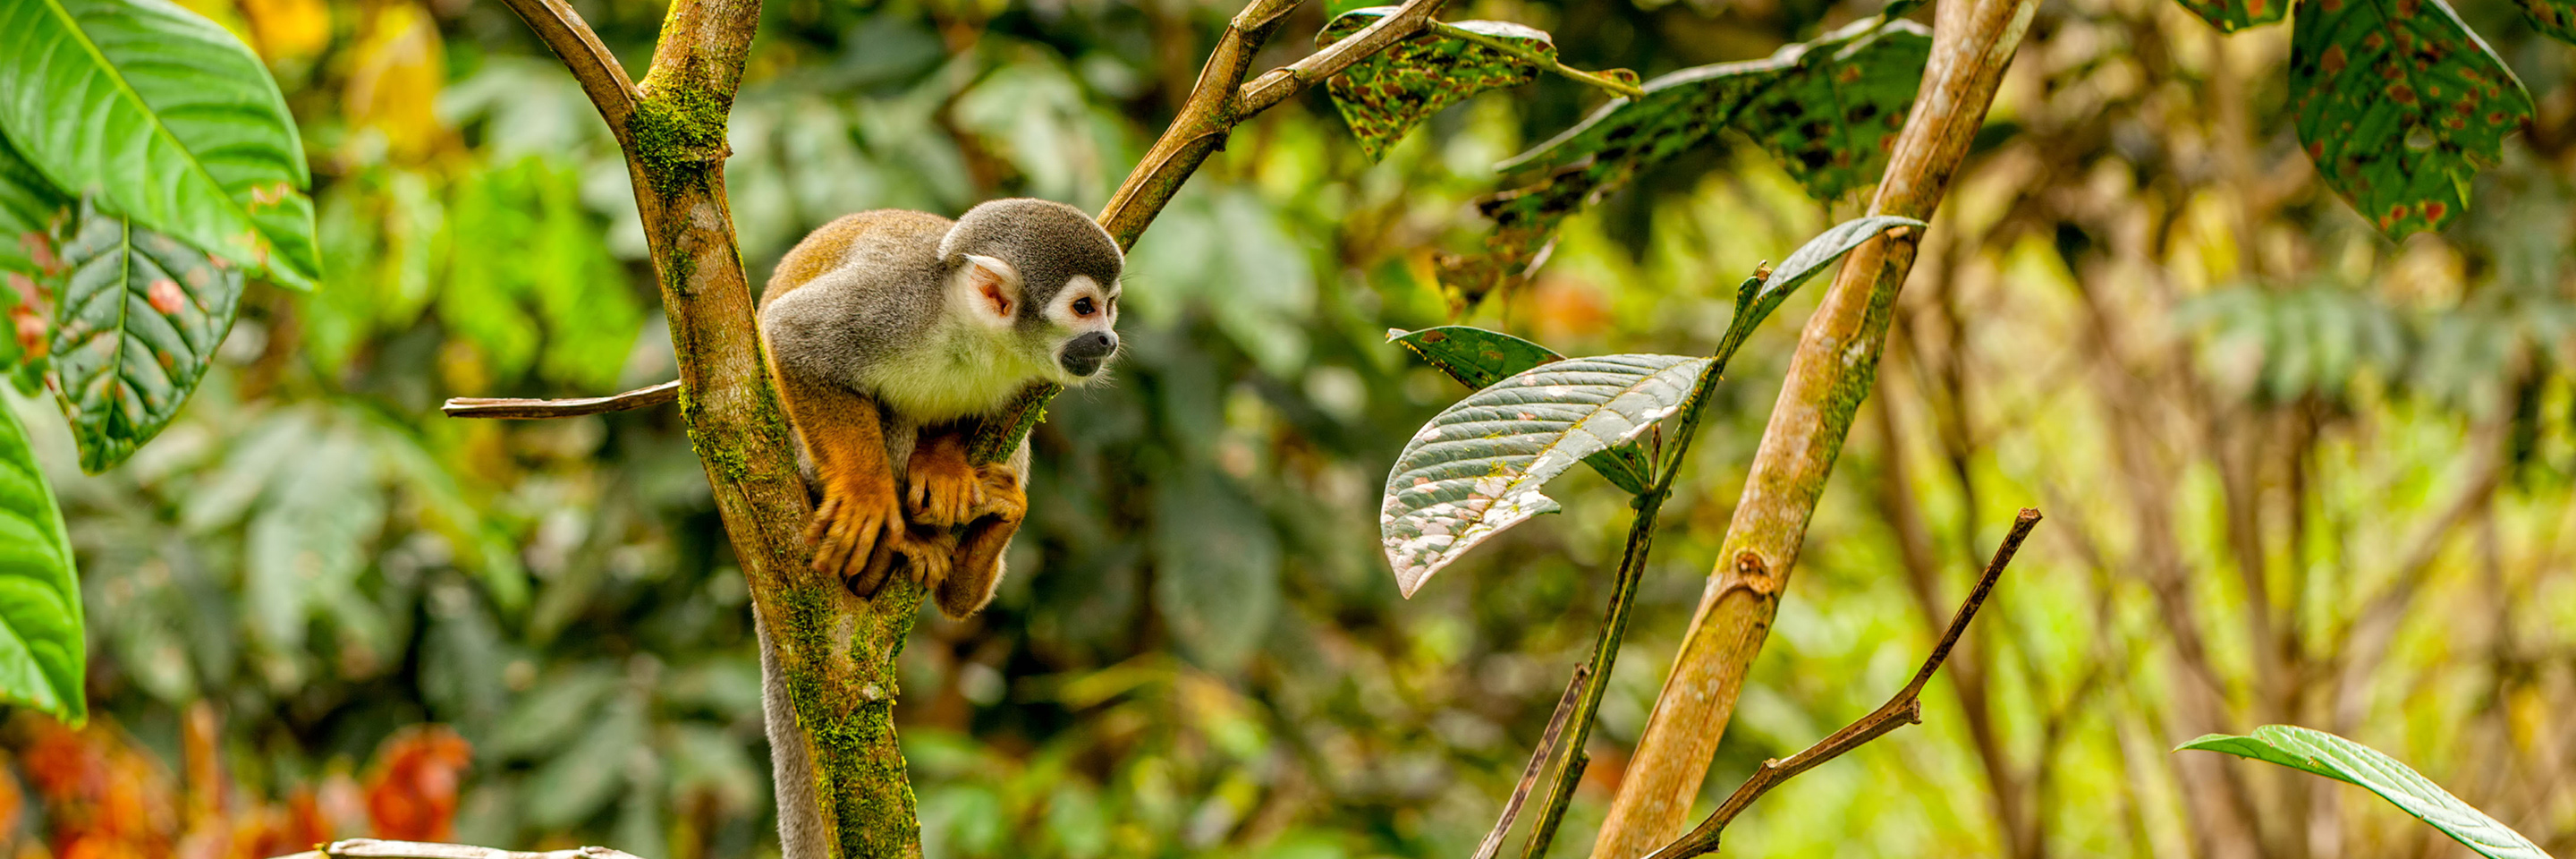 Discover the Galápagos & Peru with the Amazon